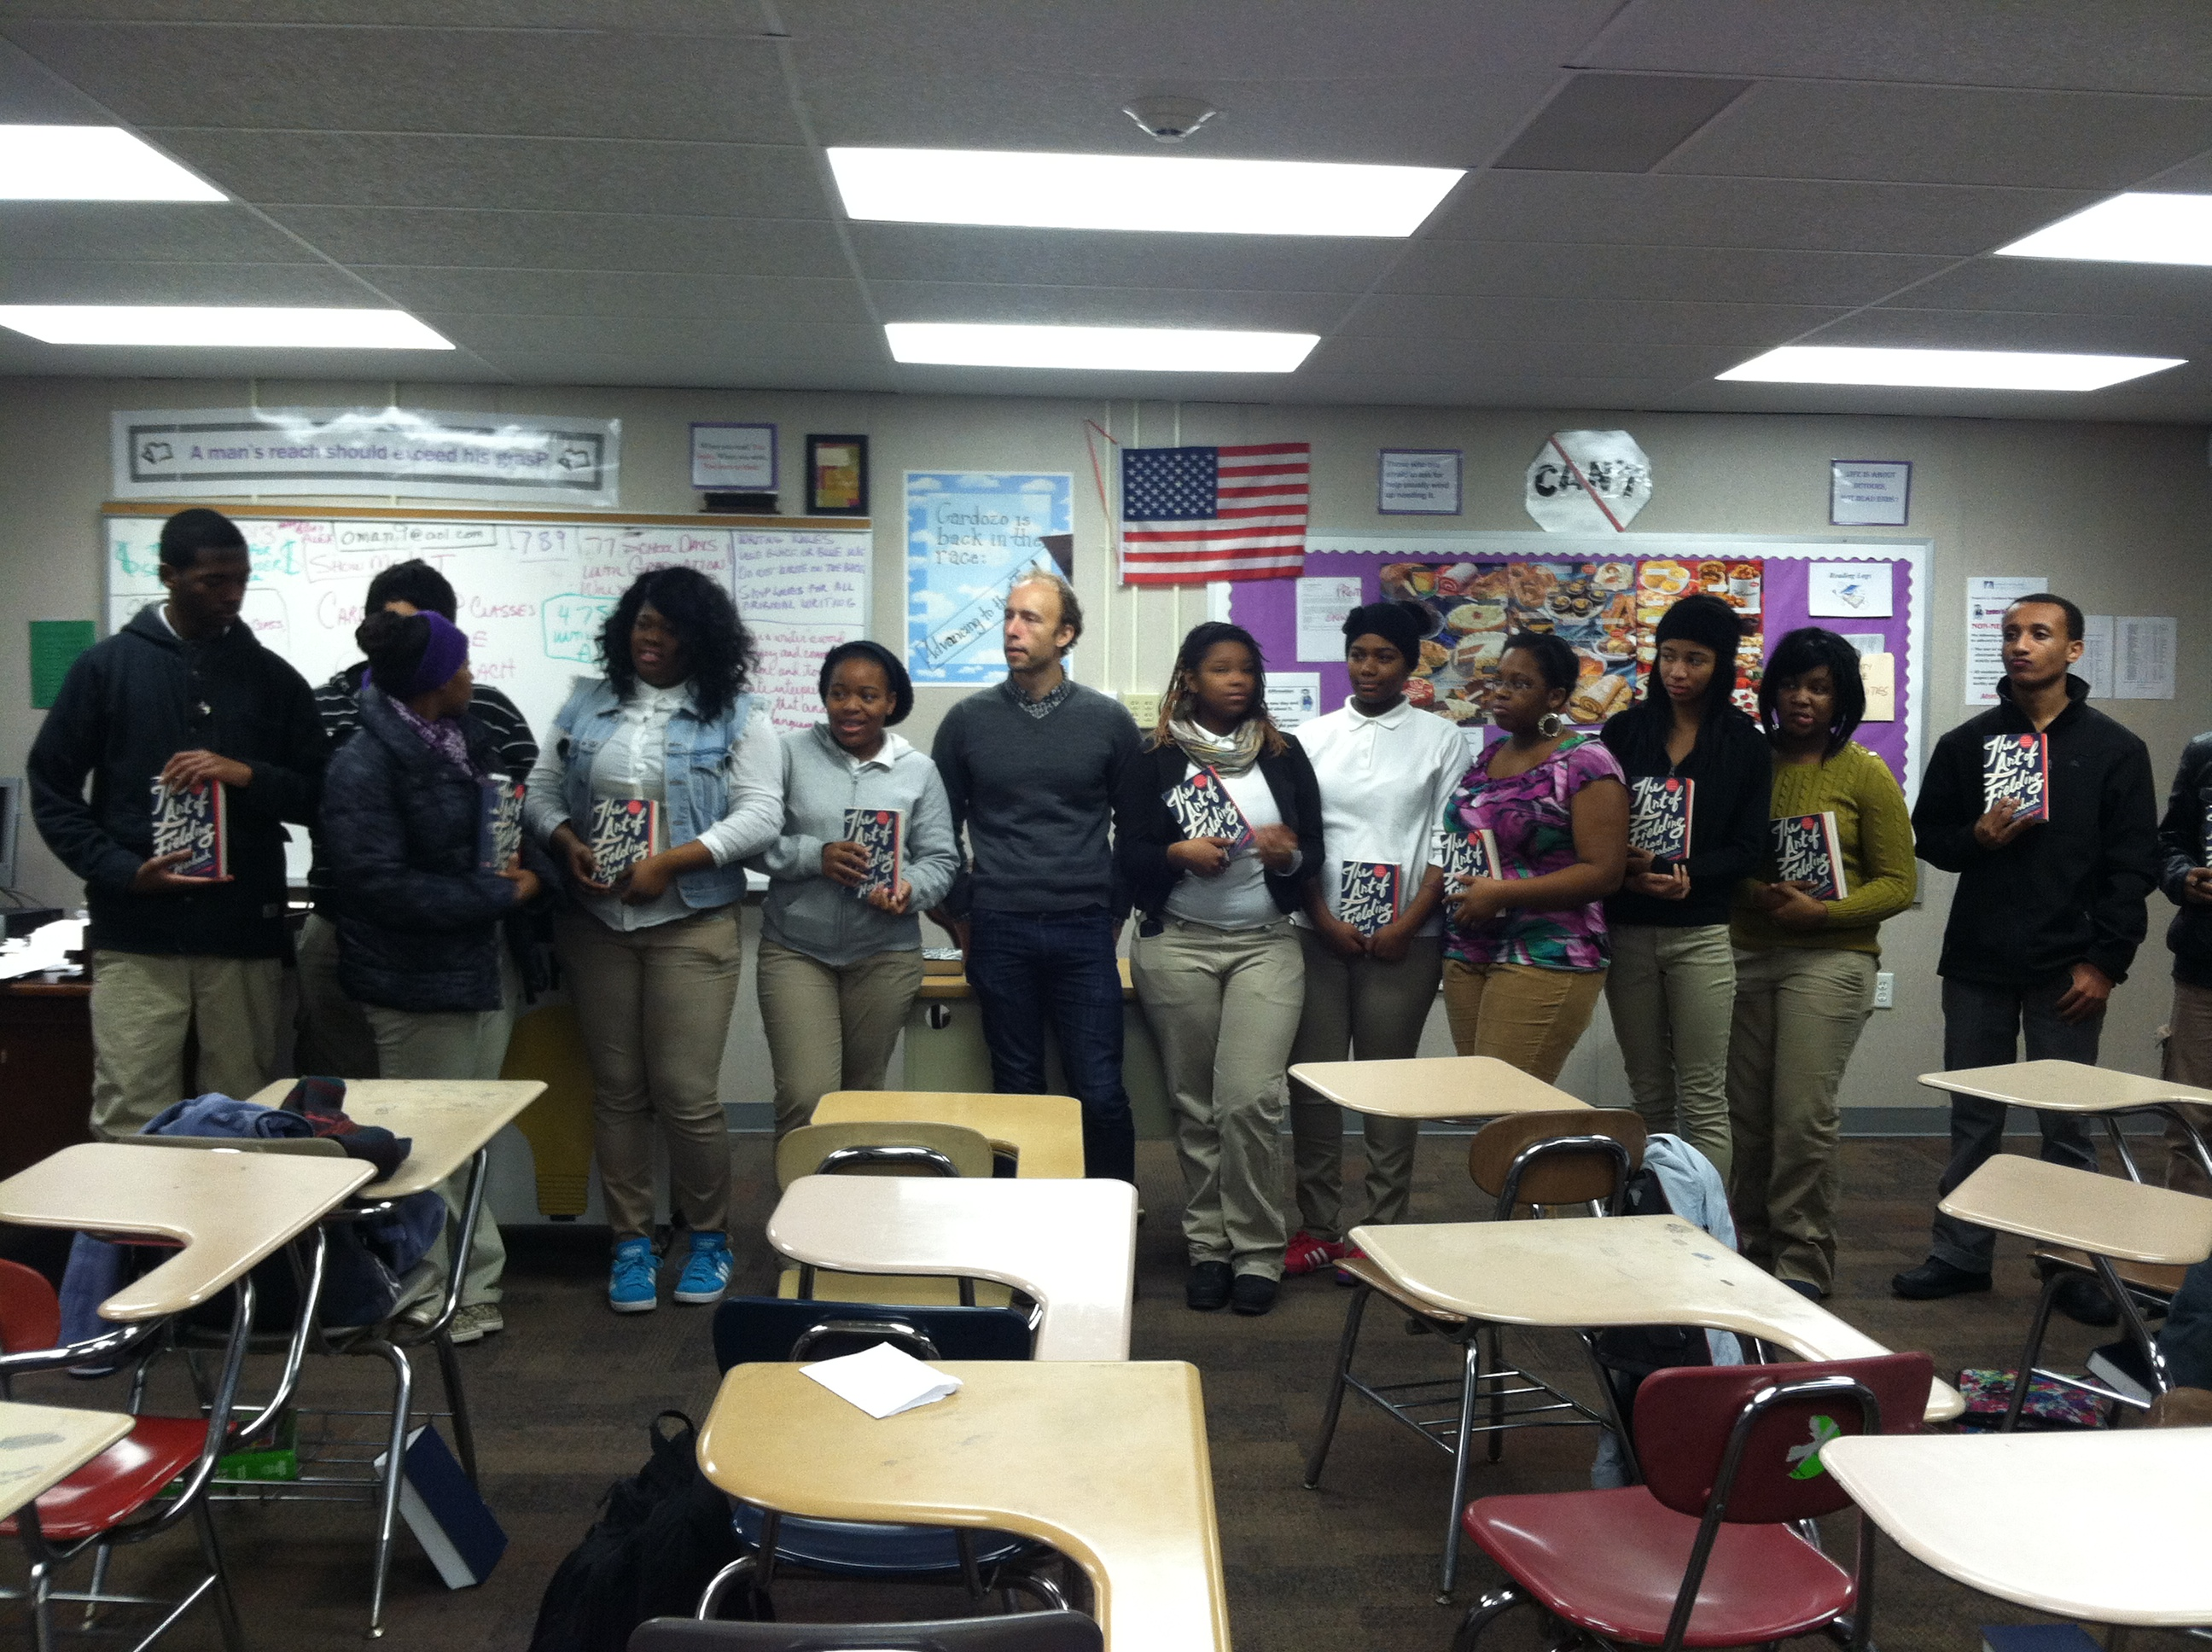 Author Chad Harbach poses with students from Cardozo High School.